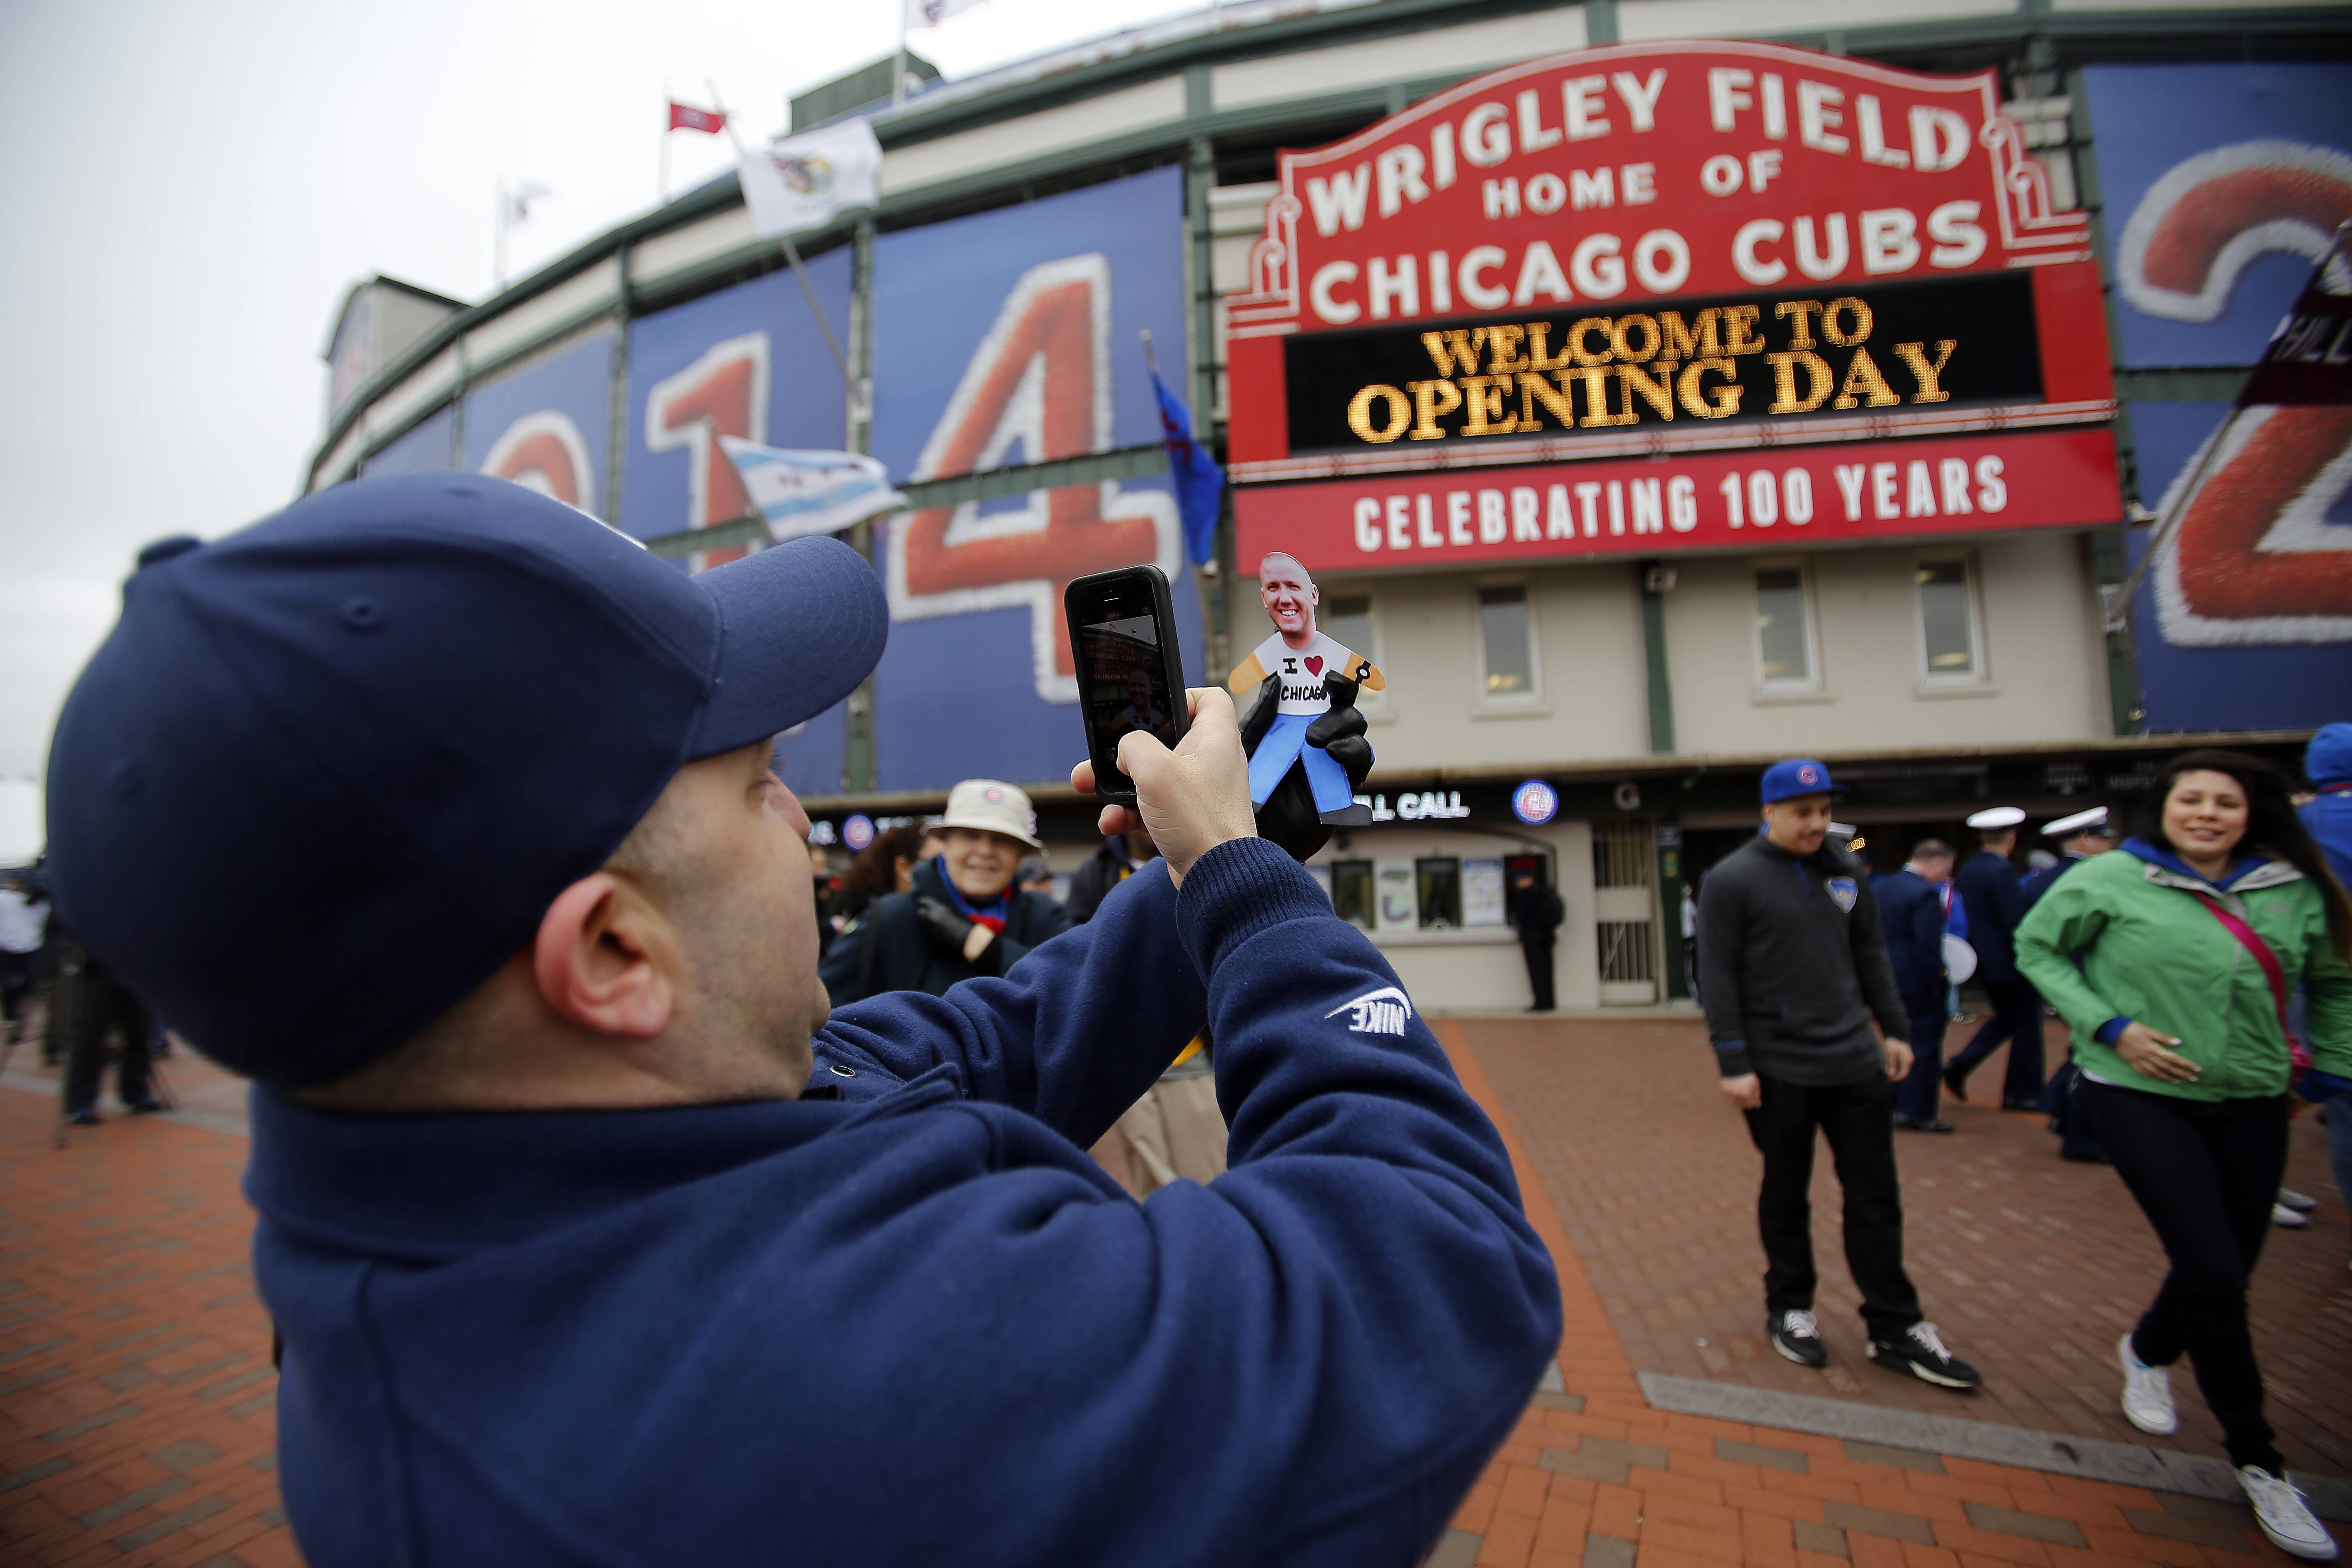 Brian Hill/bhill@dailyherald.comMark Maroon of Aurora, takes a picture of his brother-in-law Ross Fisette, Flat Stanley style before the Chicago Cubs opening day game against Philadephia Phillies Friday April 4, 2014, at Wrigley Field in Chicago. Fisette will be retiring from the Air Force this year and his family was getting pictures of his Flat Stanley style picture all over the place.